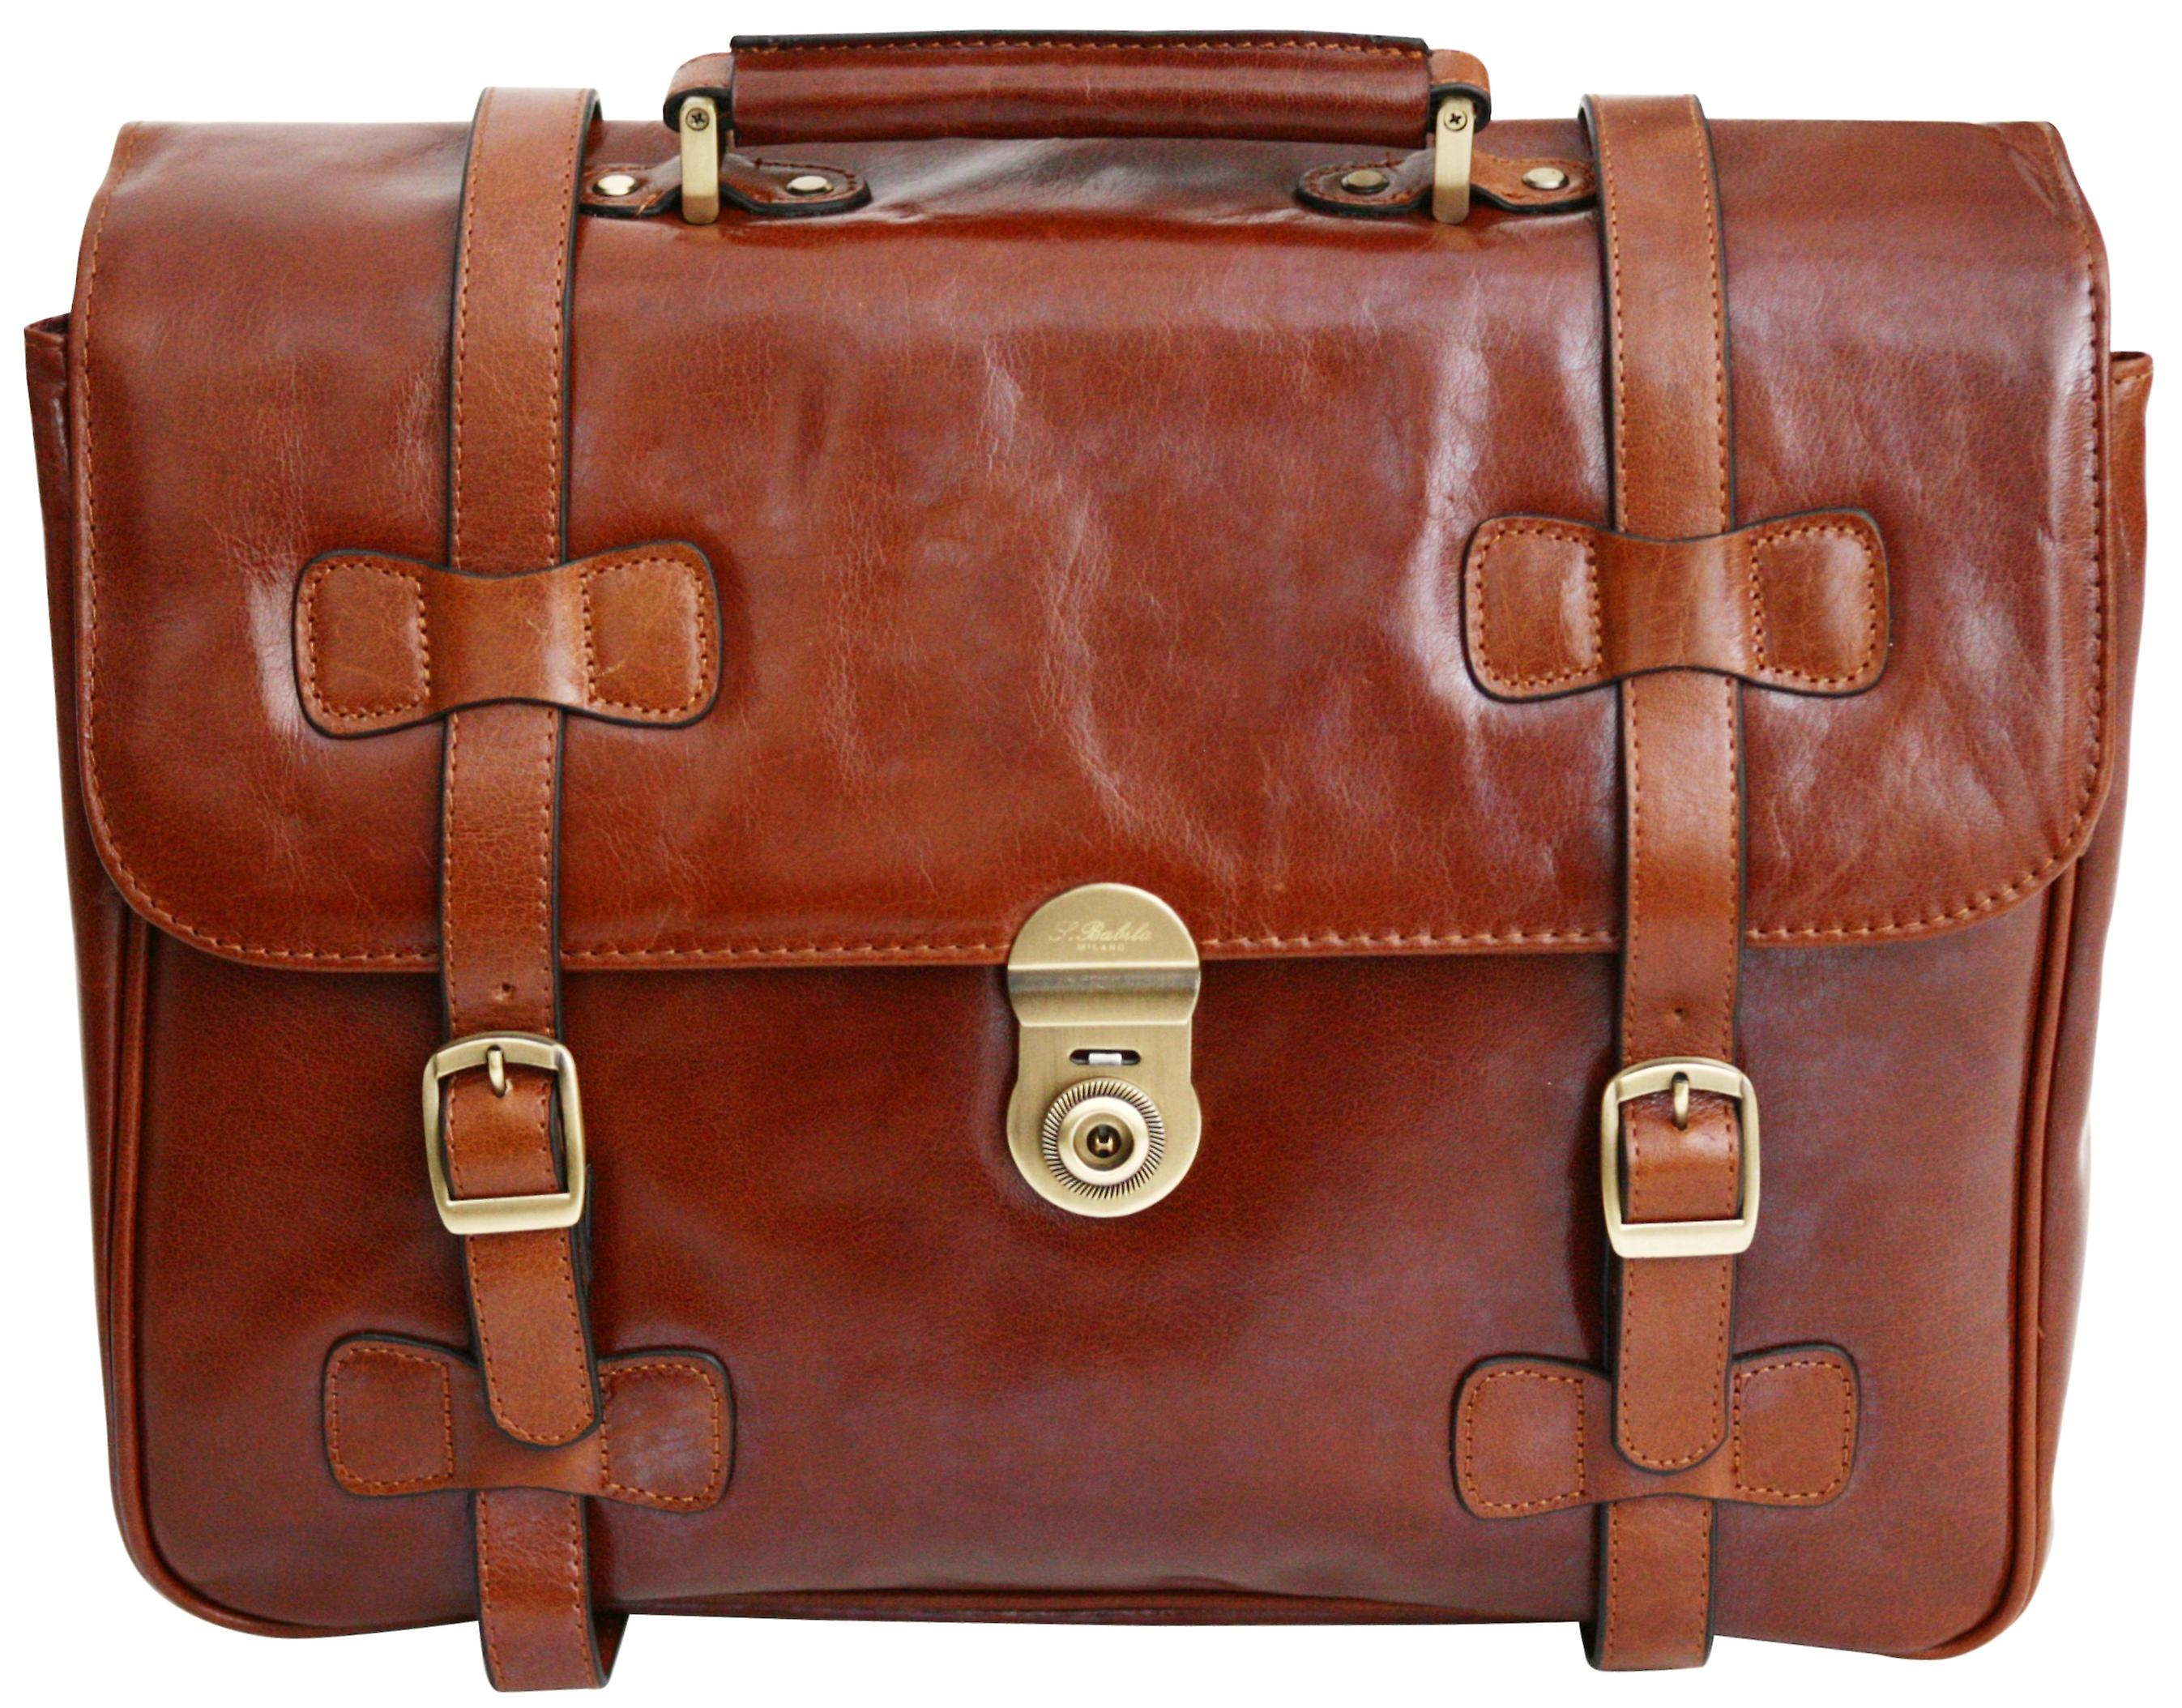 S Babila Leather Executive Briefcase Business Case Work Vinatge Style Satchel Shoulder Bag